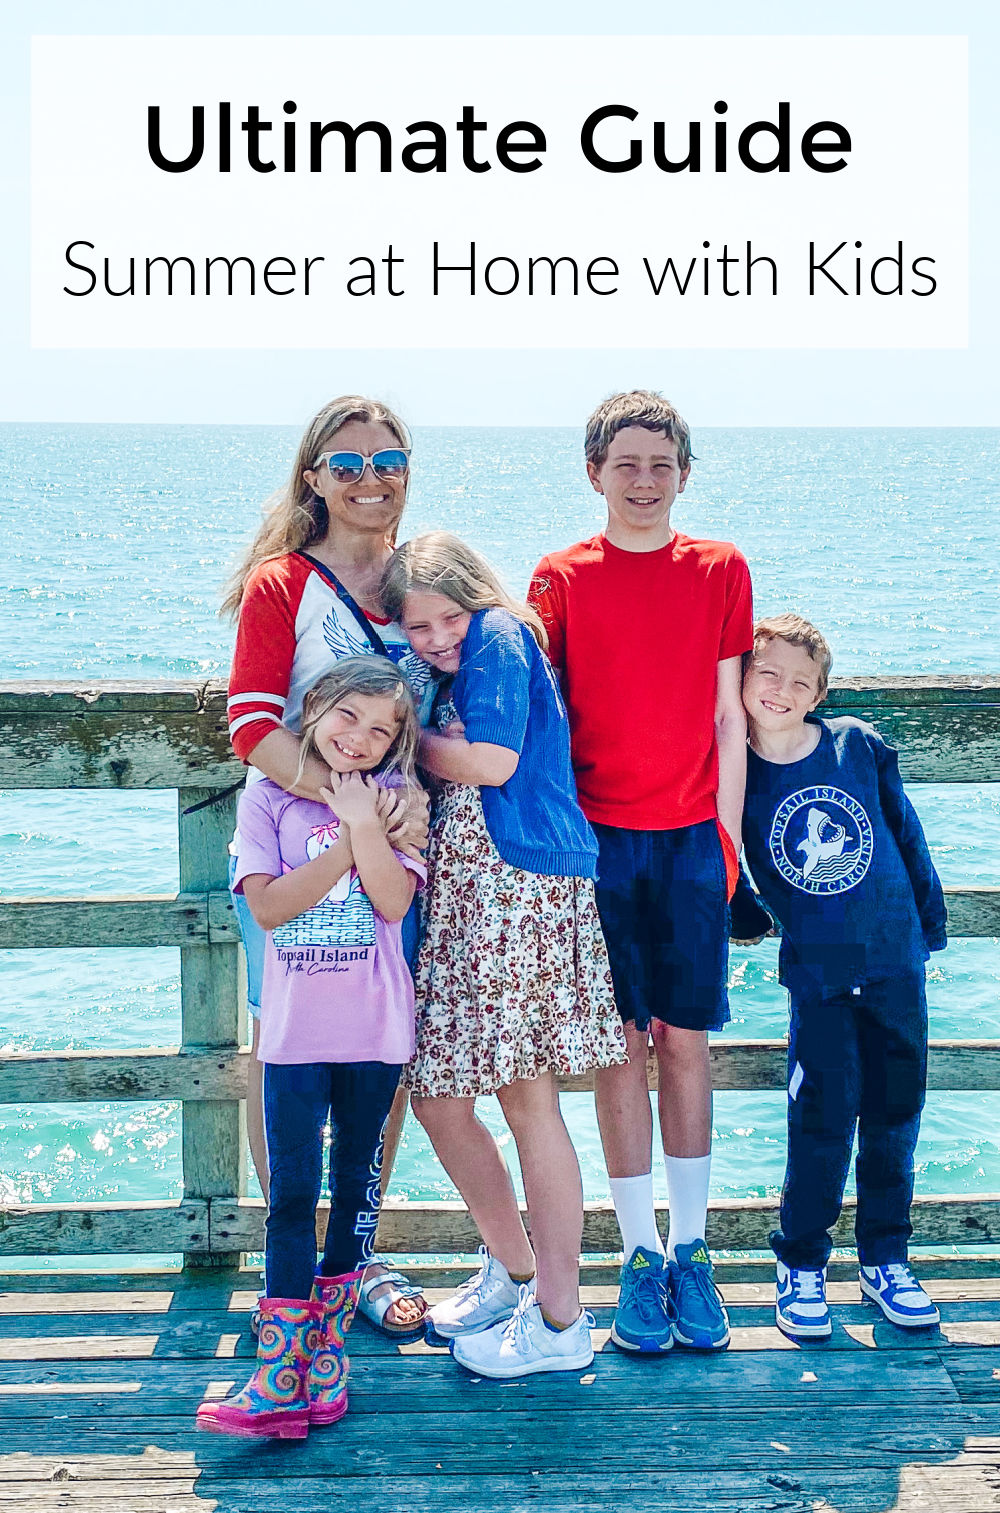 Ultimate guide for summer at home with kids. Make this summer the best one yet!